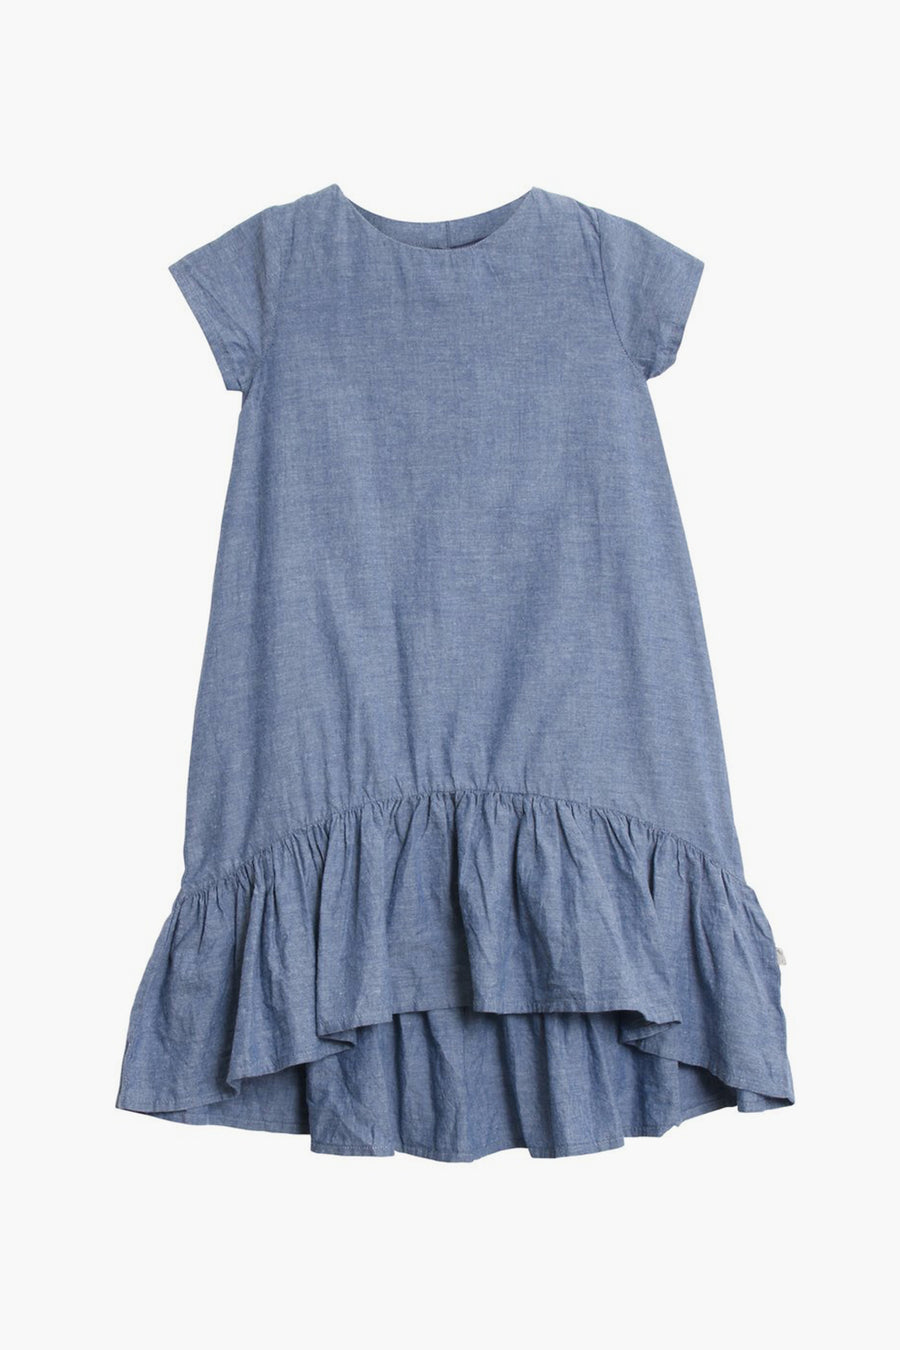 Wheat Linda Girls Dress